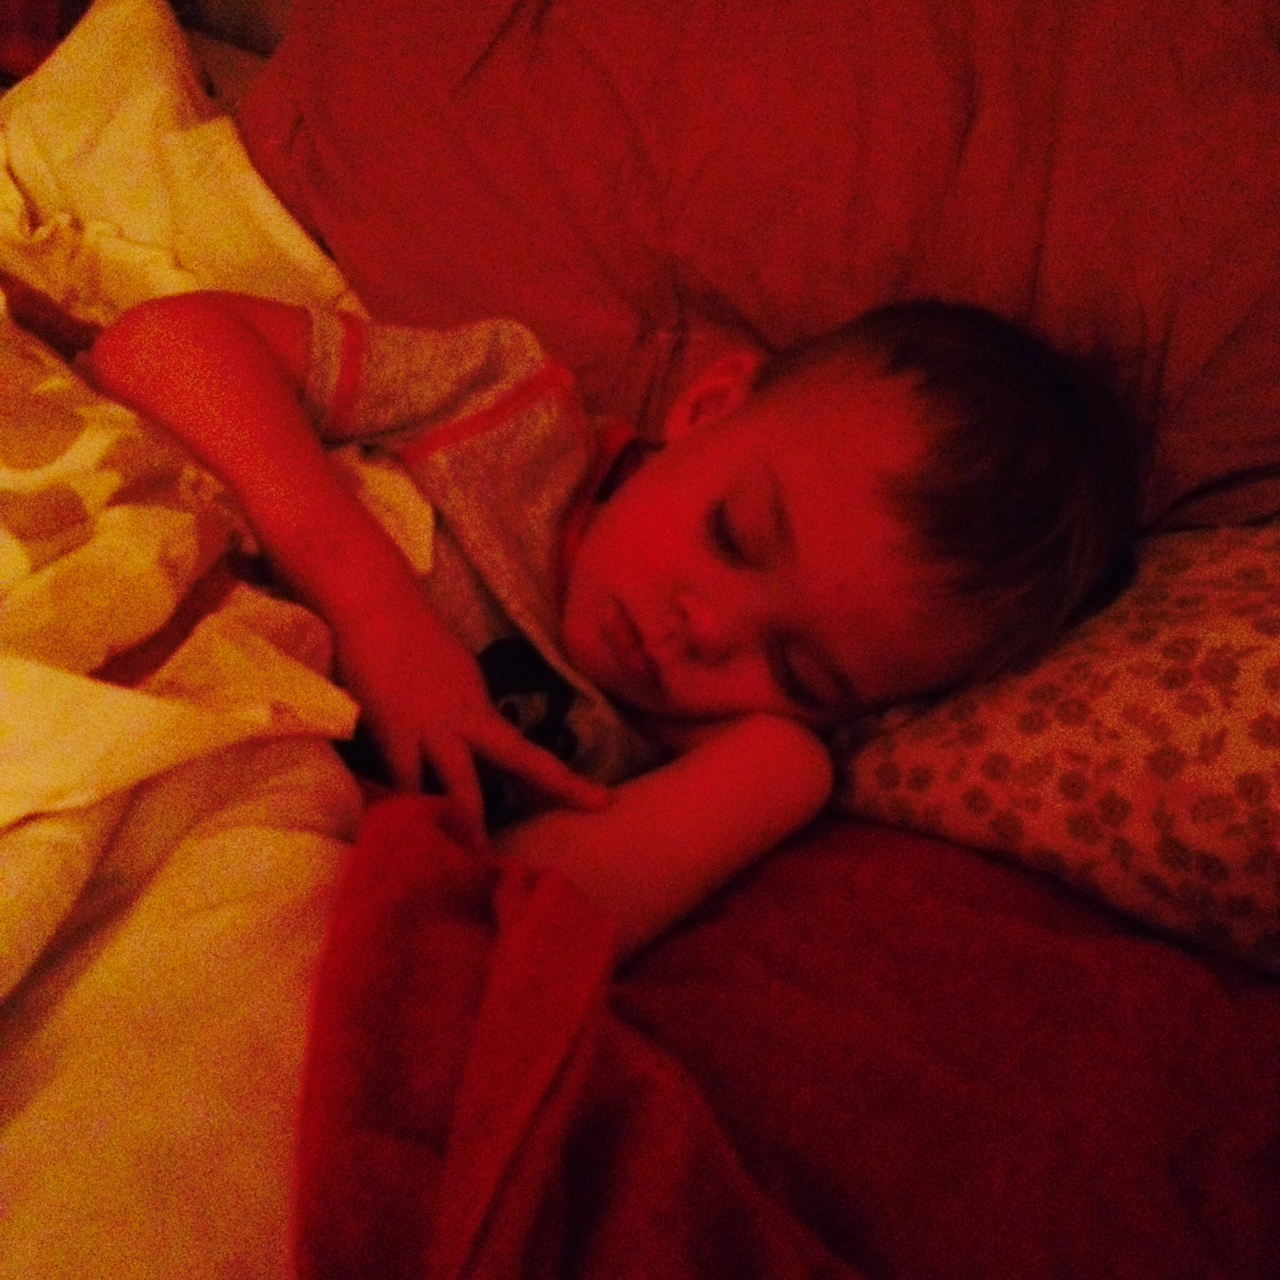 My Child Sleeping at the End of His Sick Day